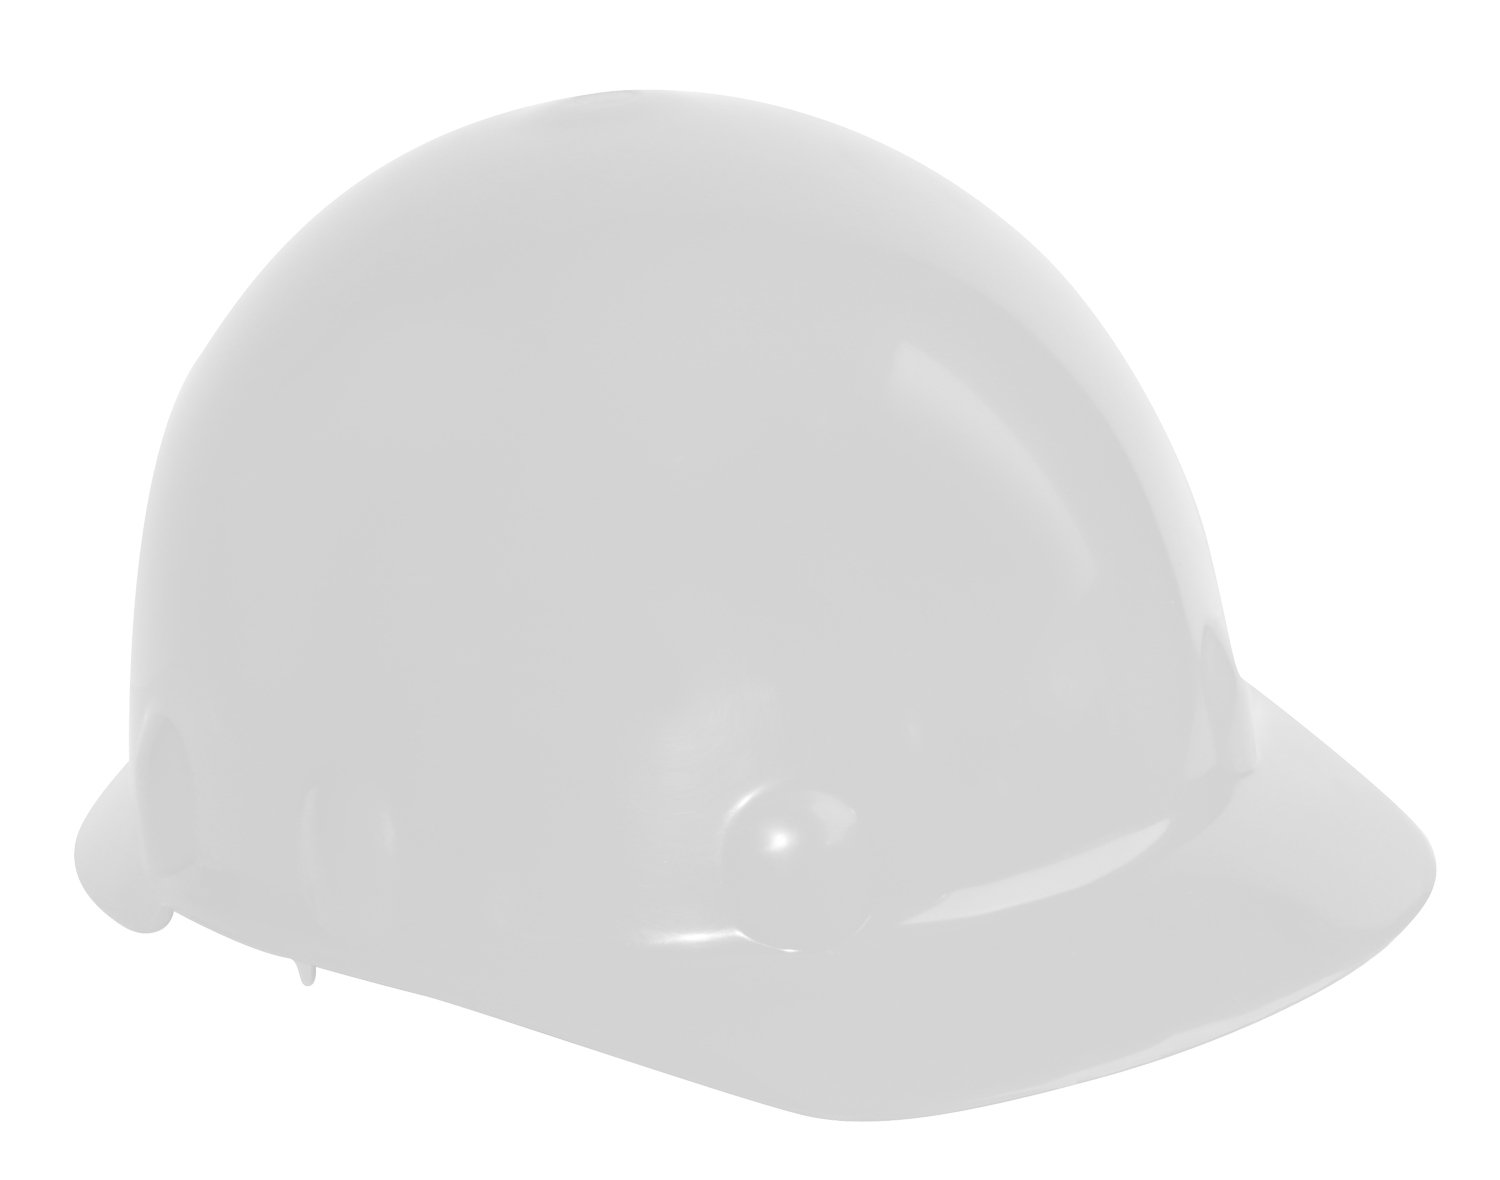 White Honeywell Safety Products USA Fibre-Metal by Honeywell SE201A000 Super Eight Type 2 Ratchet Cap Style Hard Hat